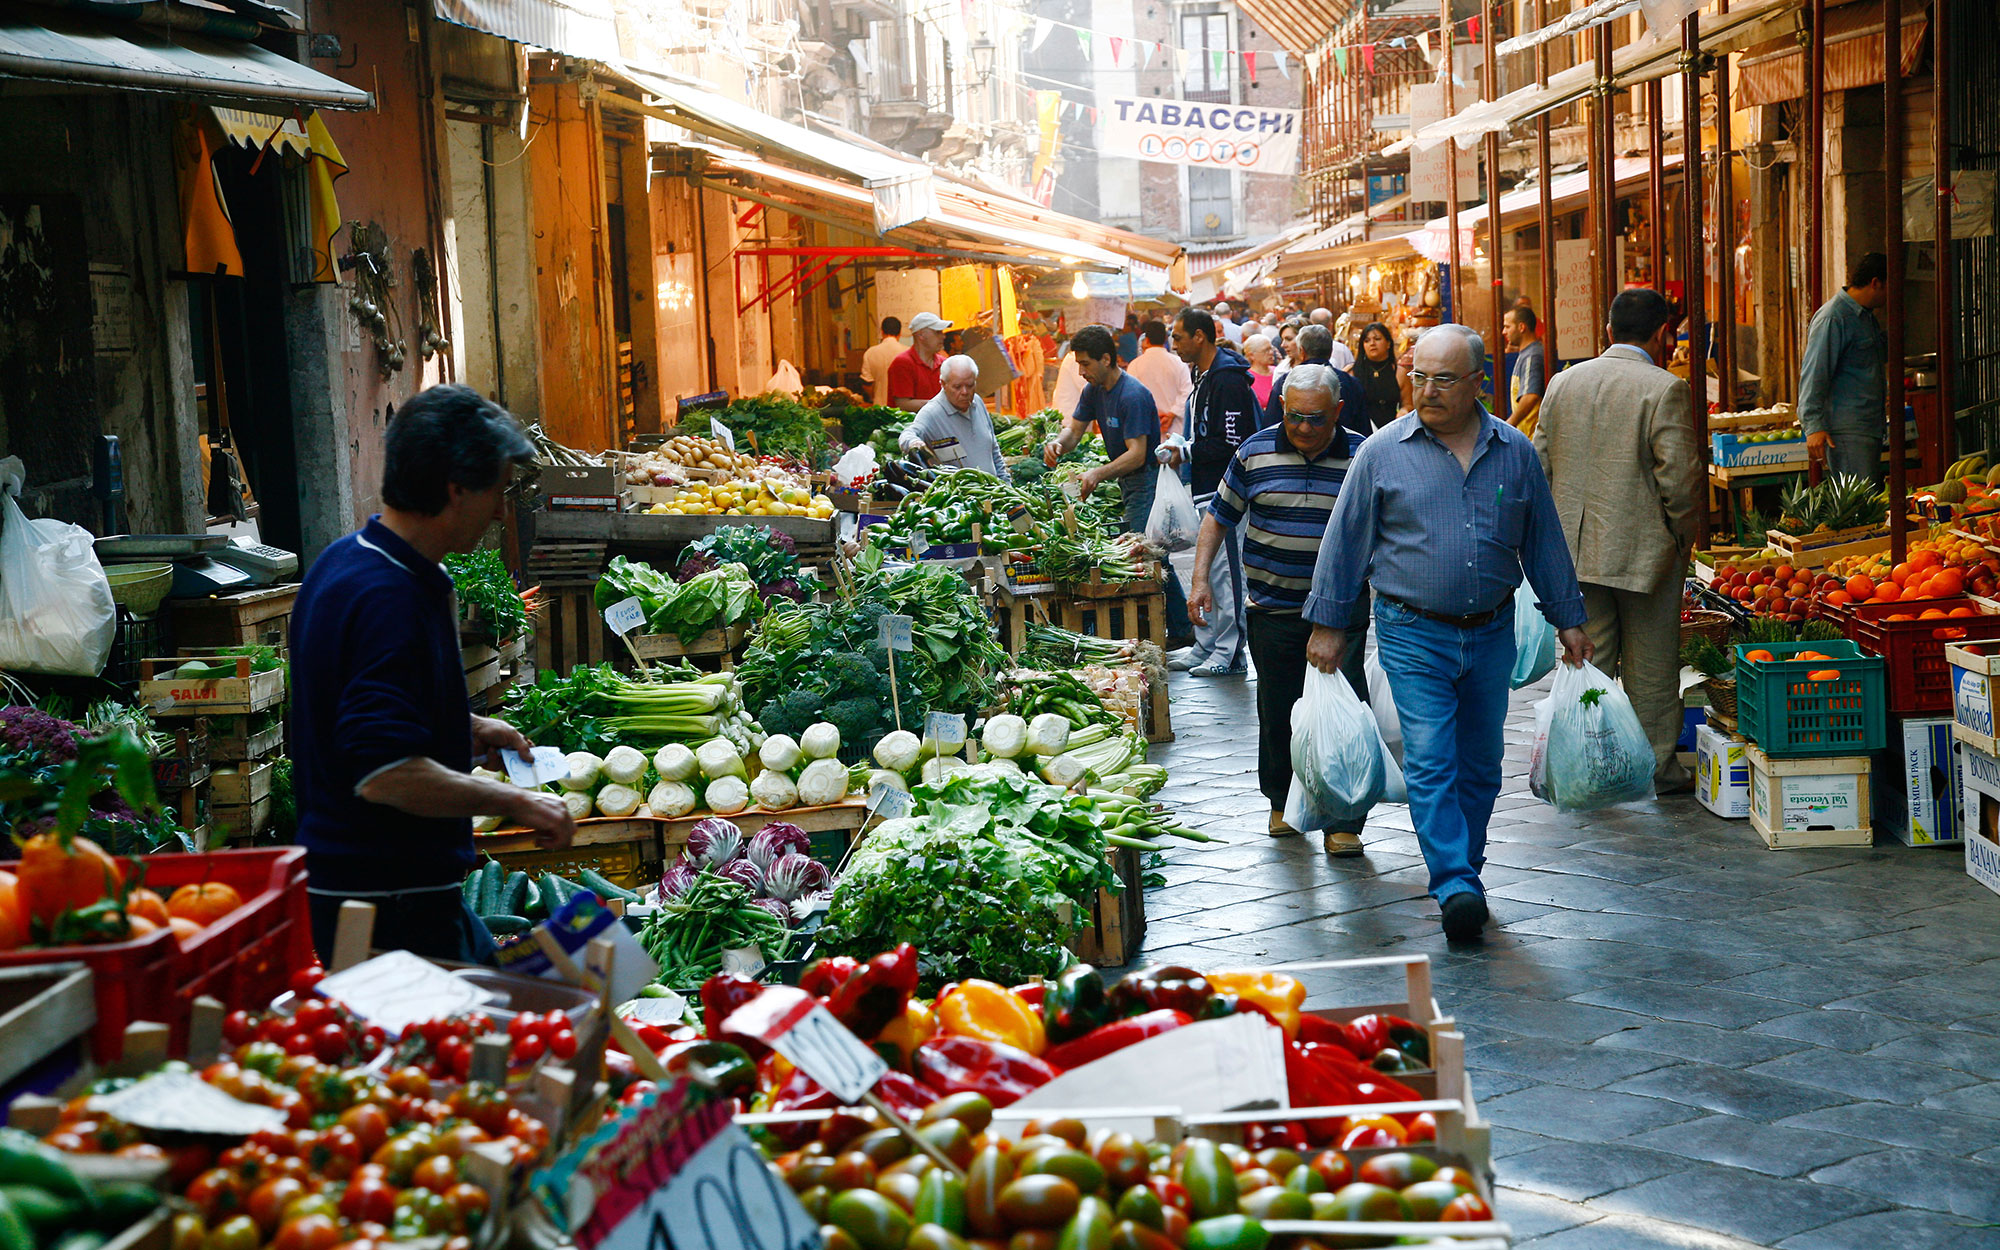 Best Islands for Food: No. 4 Sicily